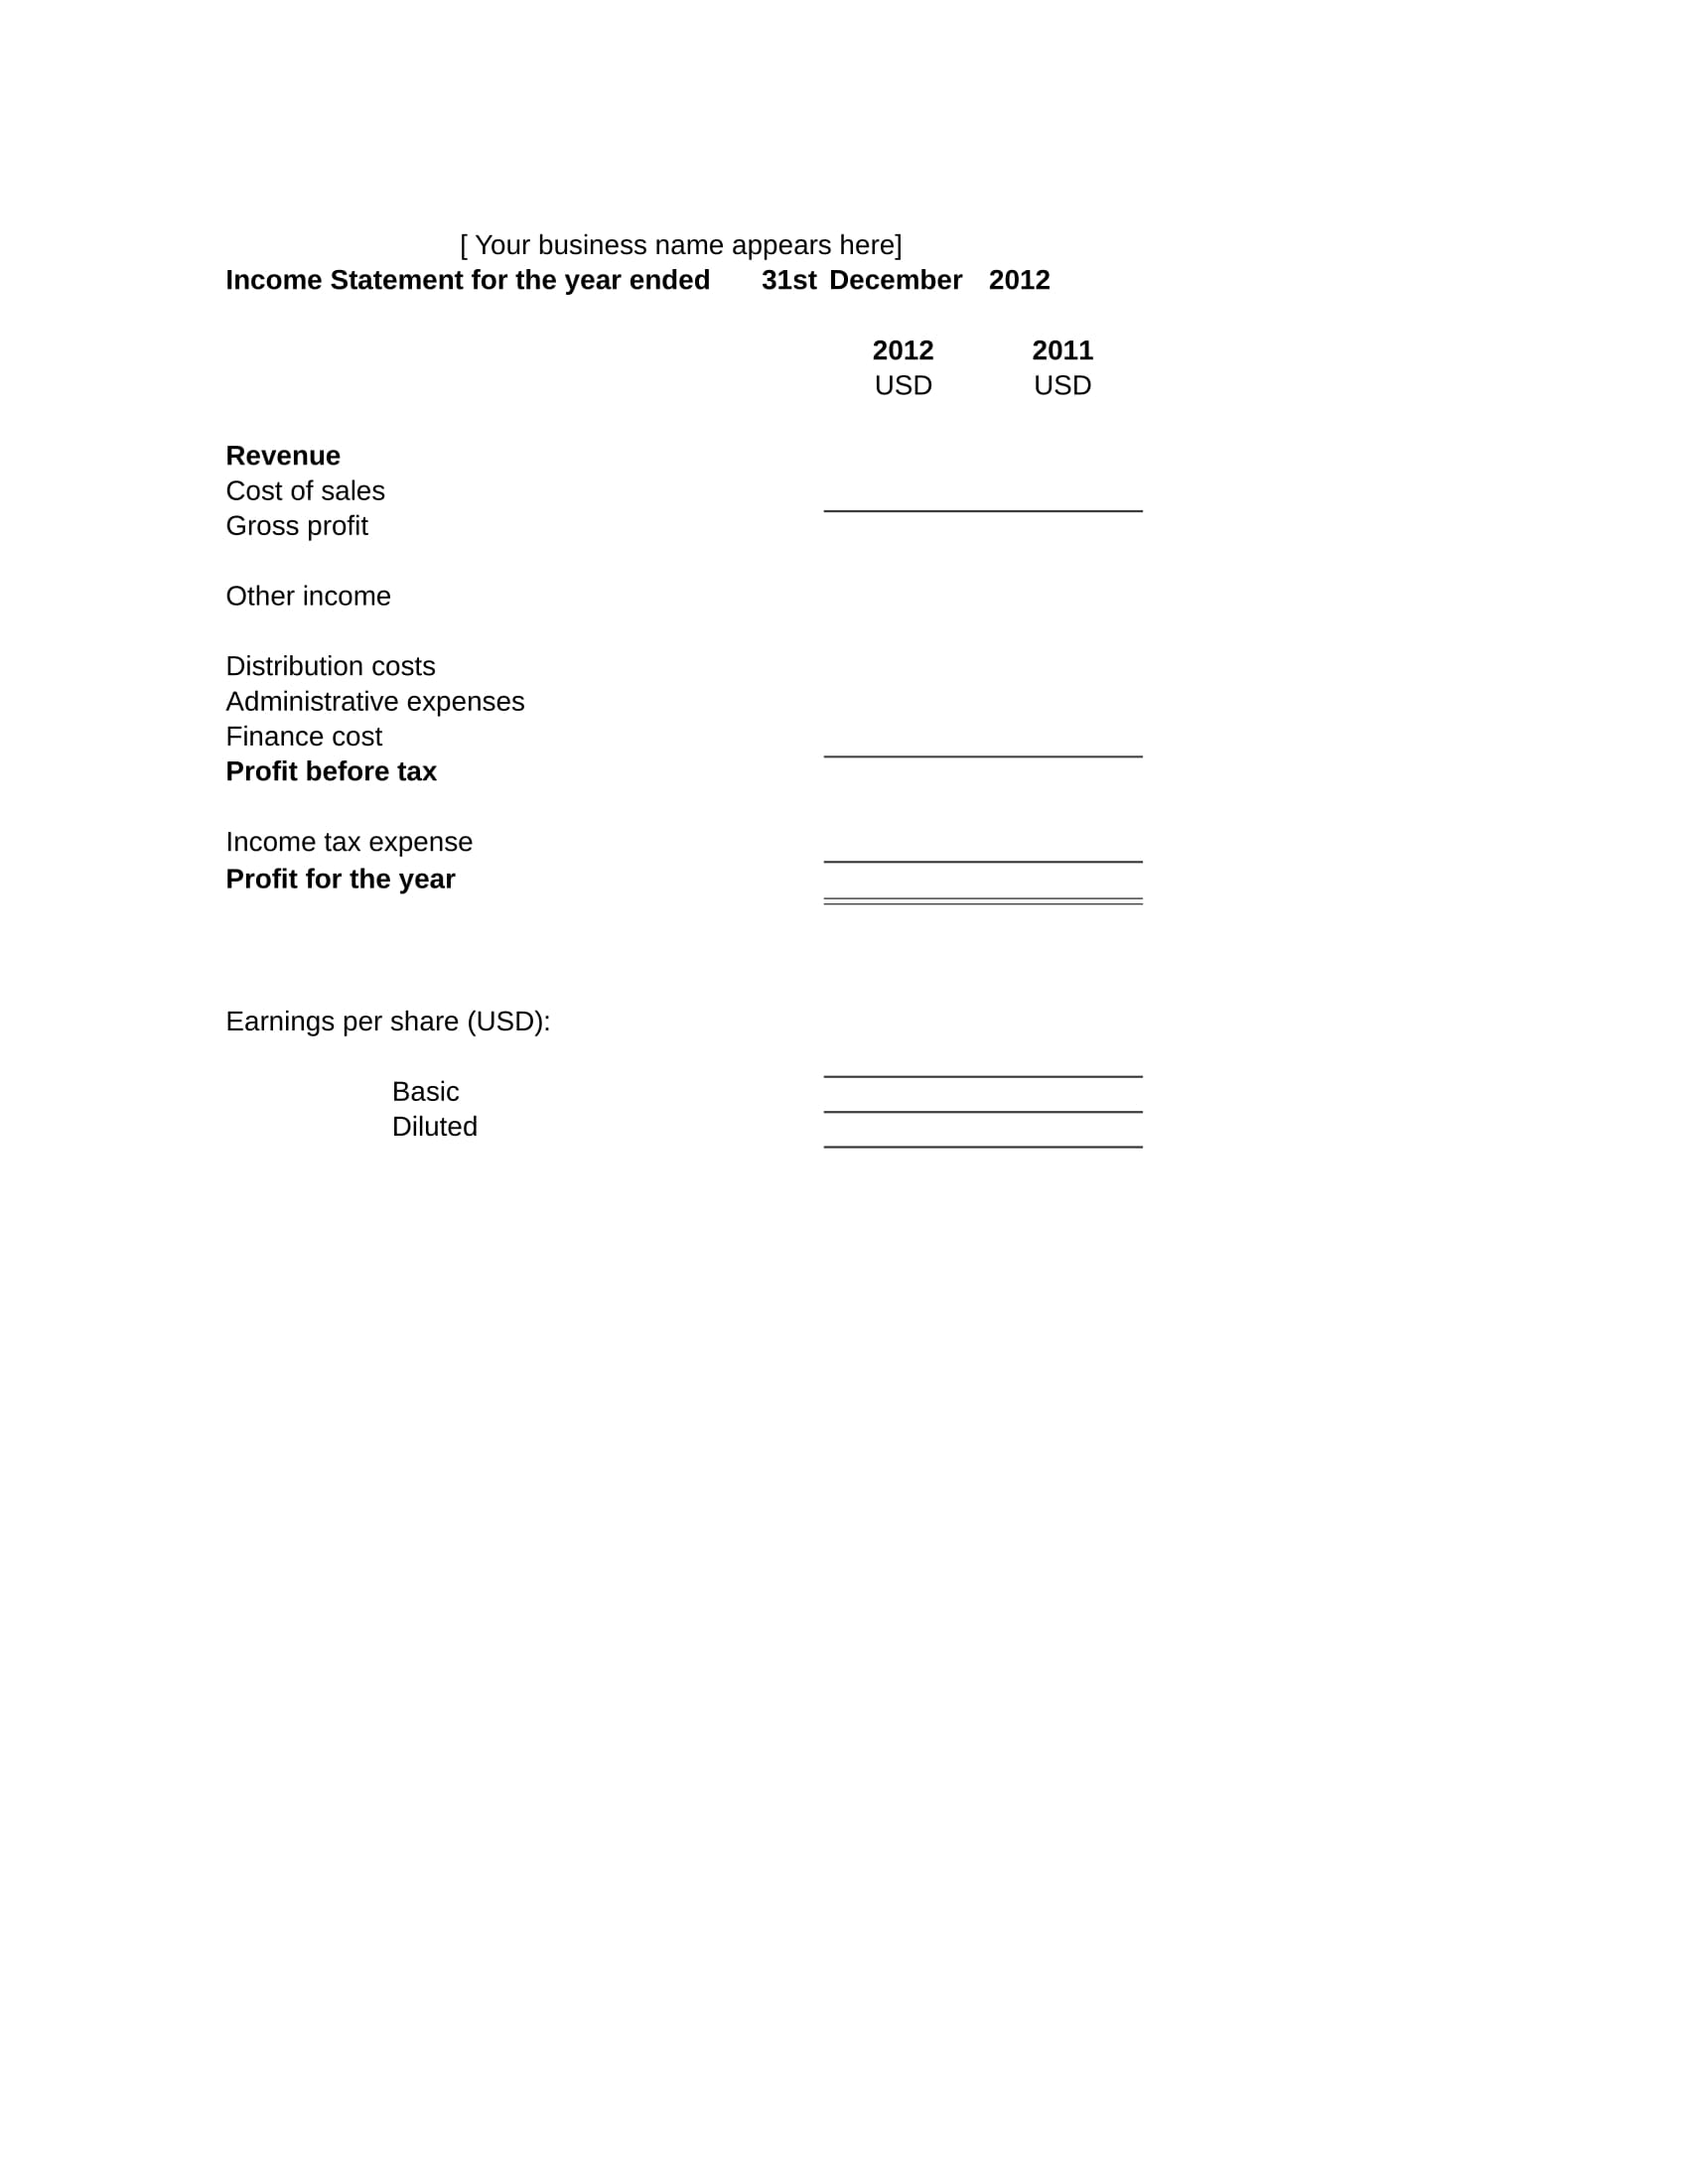 income statement form 2